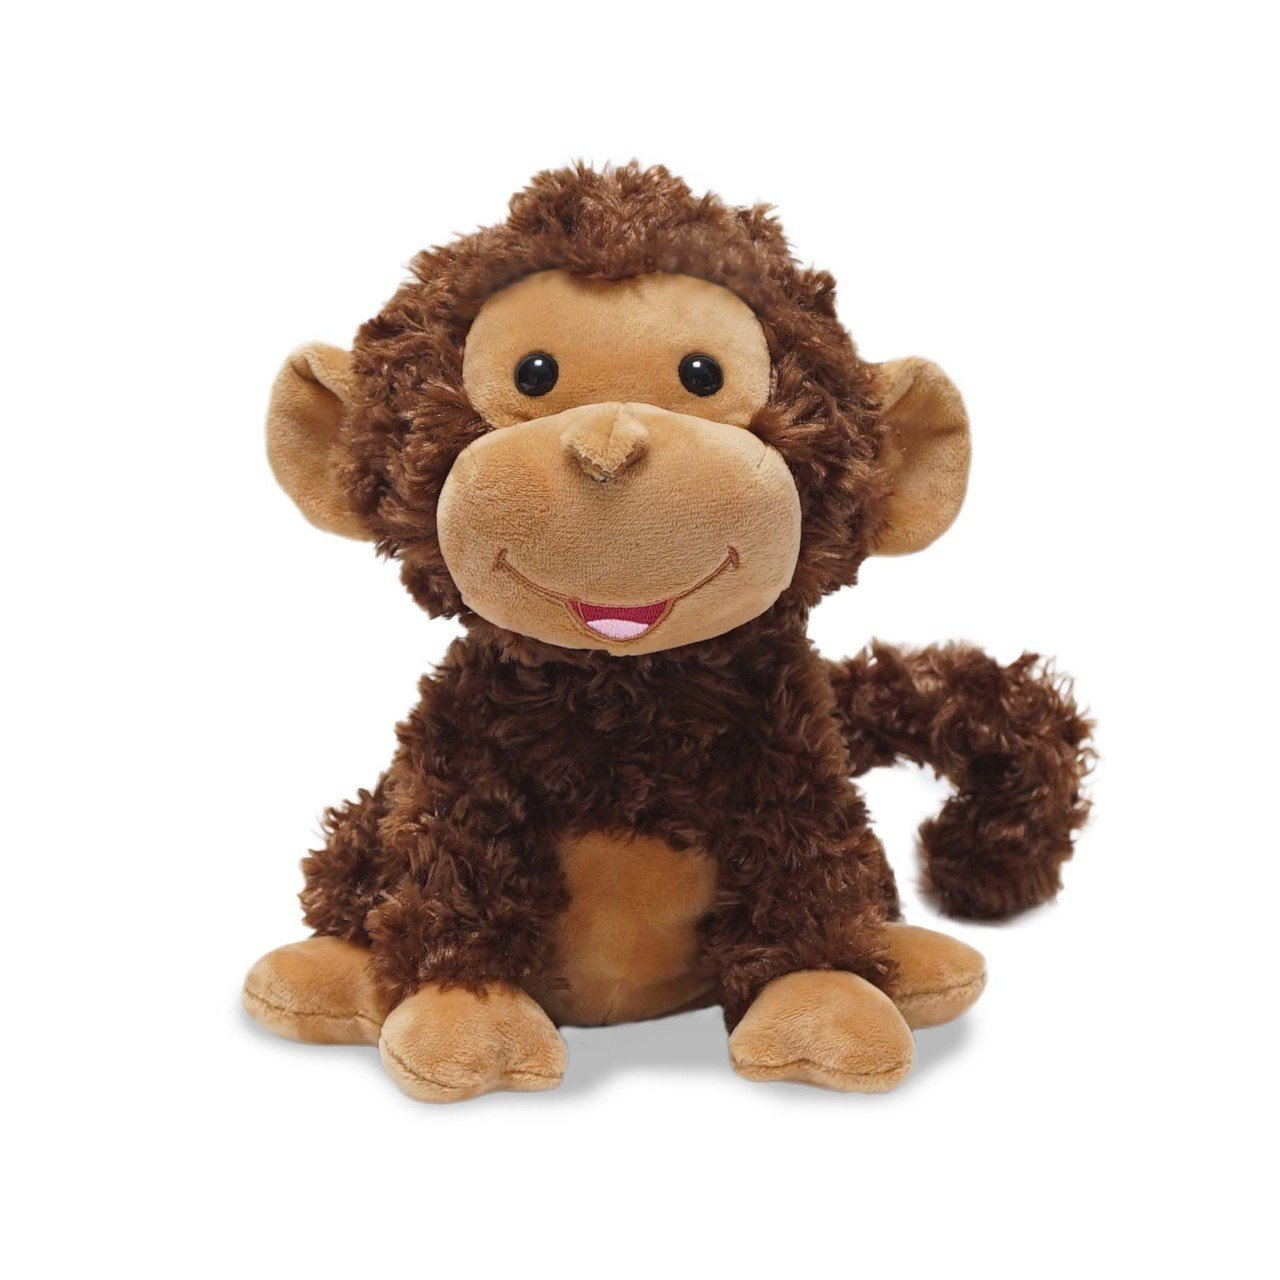 "Cuddle Barn® Crackin' Up Coco Monkey Animated Musical Plush Toy, 10"" Super Soft Cuddly Stuffed Animal will Have your Child Cracking up at its Fun Movement, Contagious Laughter and Funny Monkey Noises"